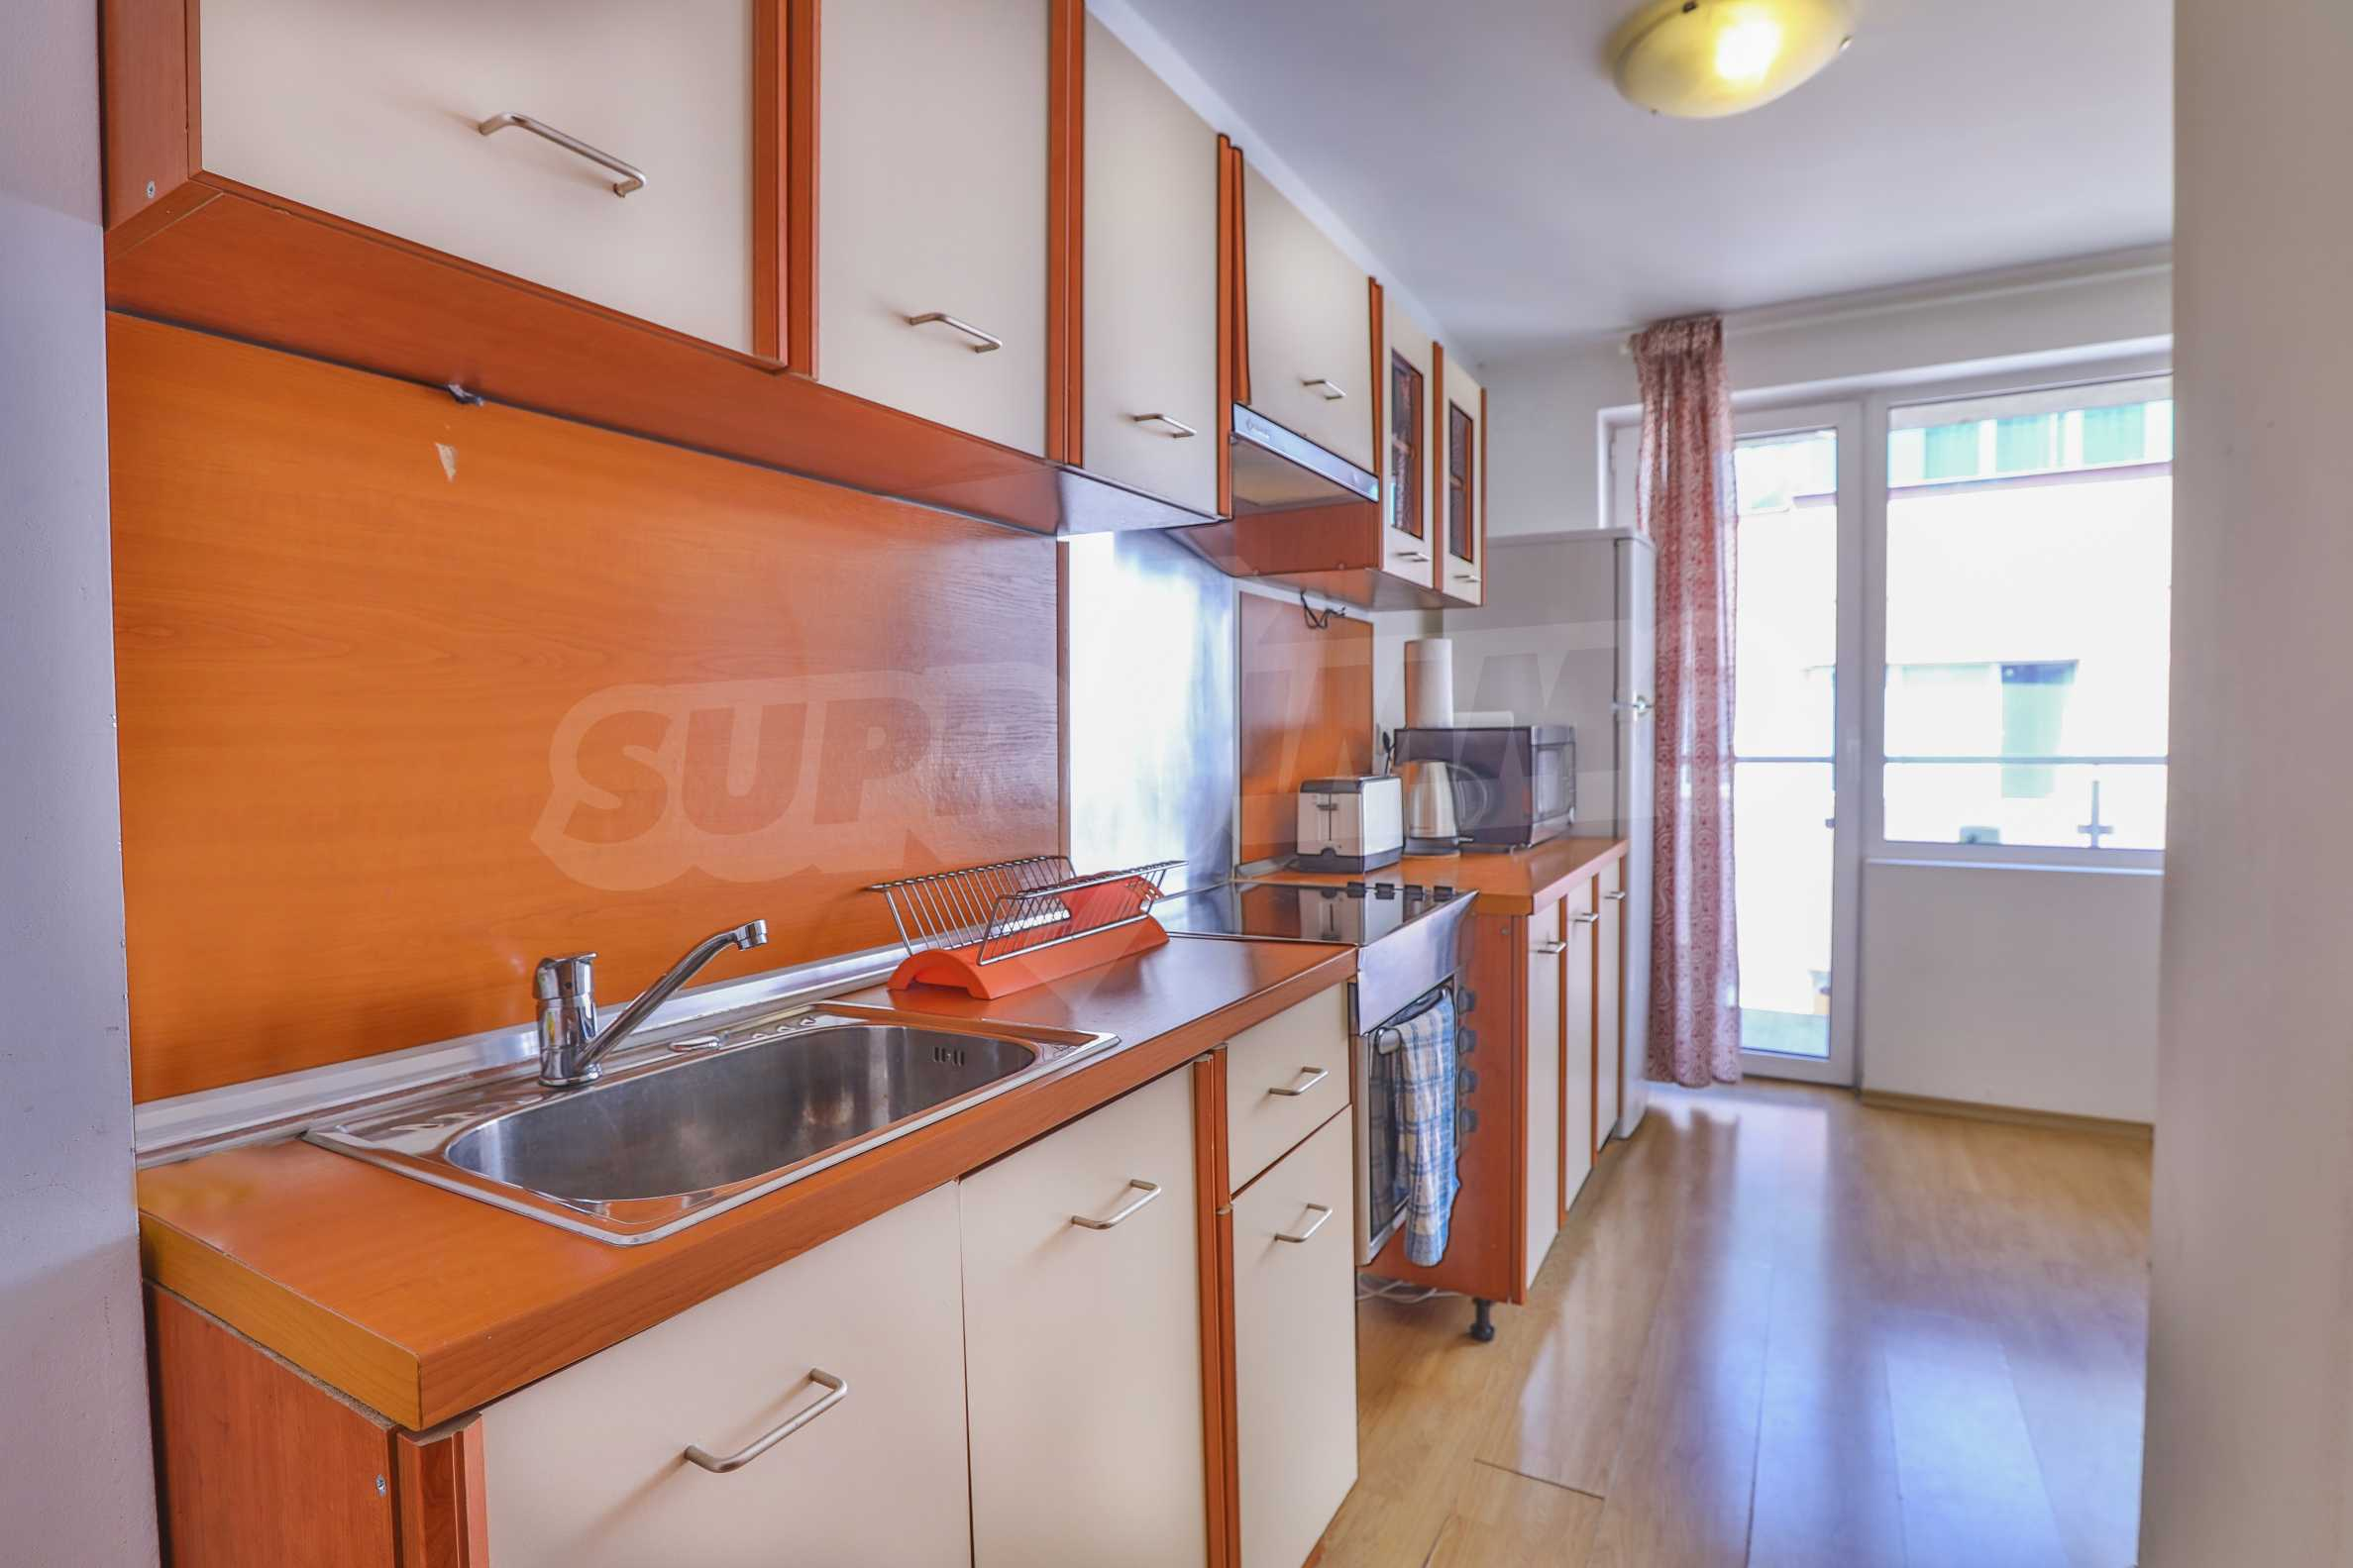 Two-bedroom apartment in the center with high rating on Airbnb 3